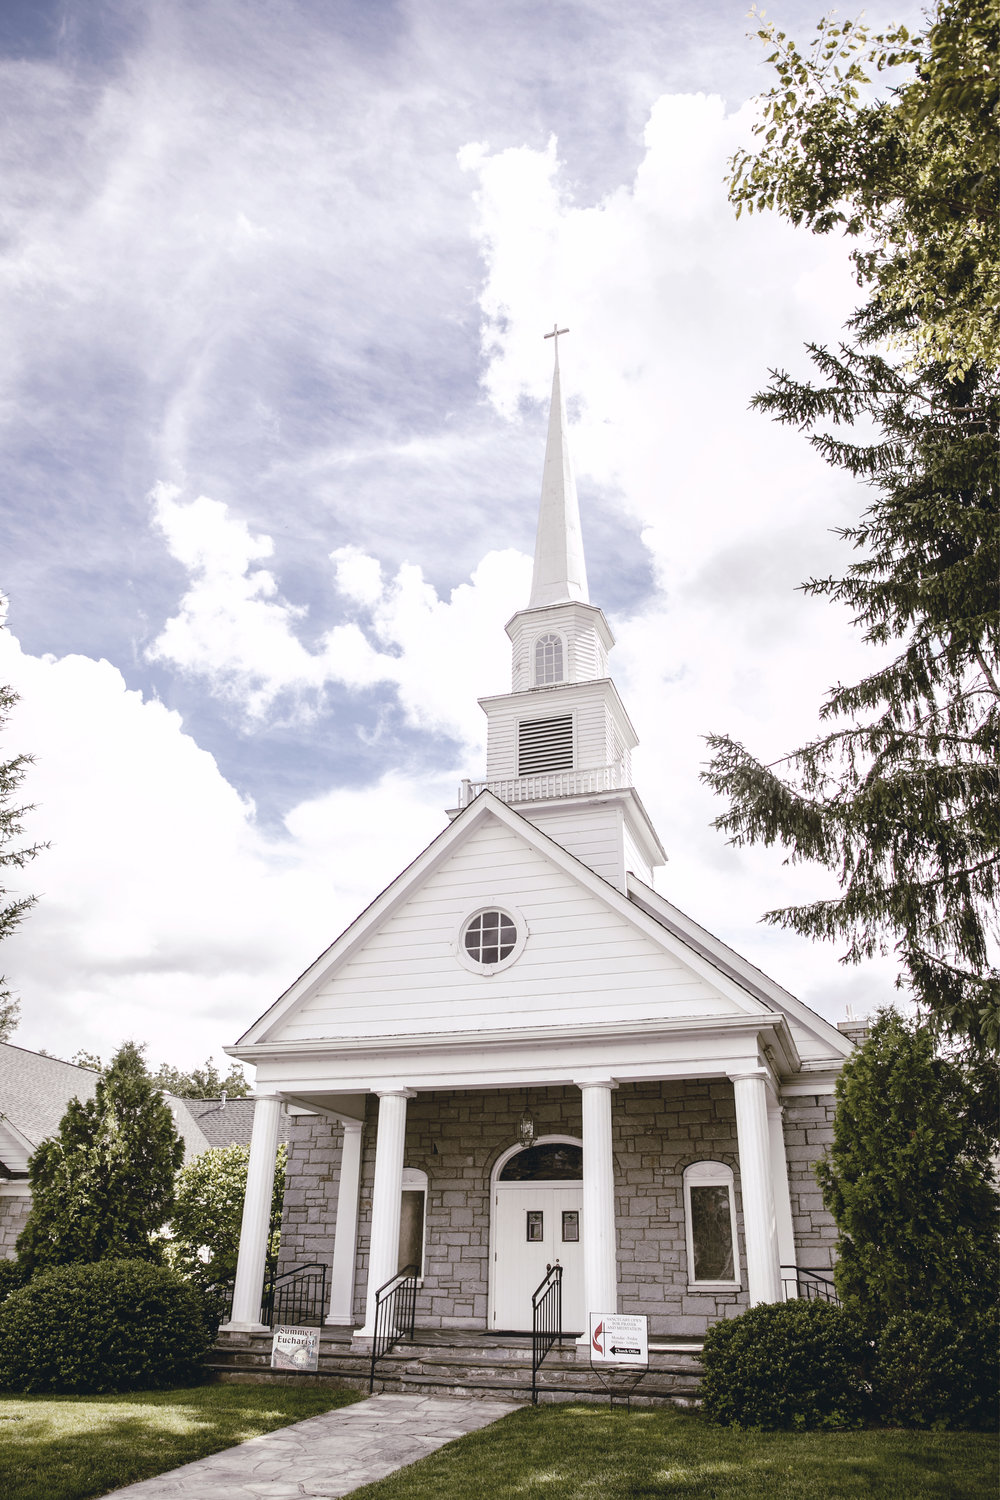 church in highlands North Carolina / heirloomed travel